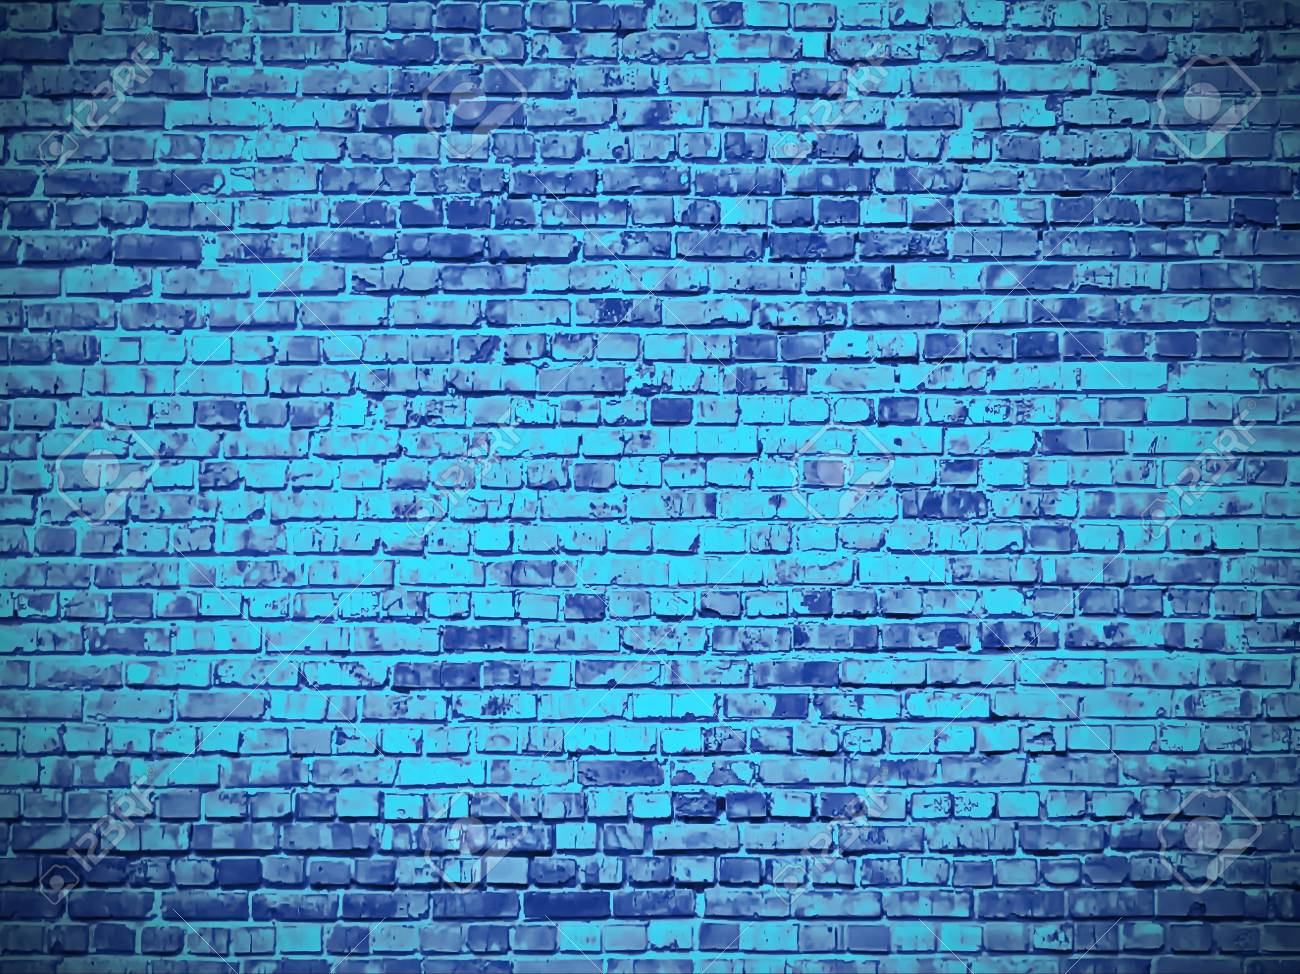 Texture Of A Brick Wall Elegant Wallpaper Design For Web Or Stock